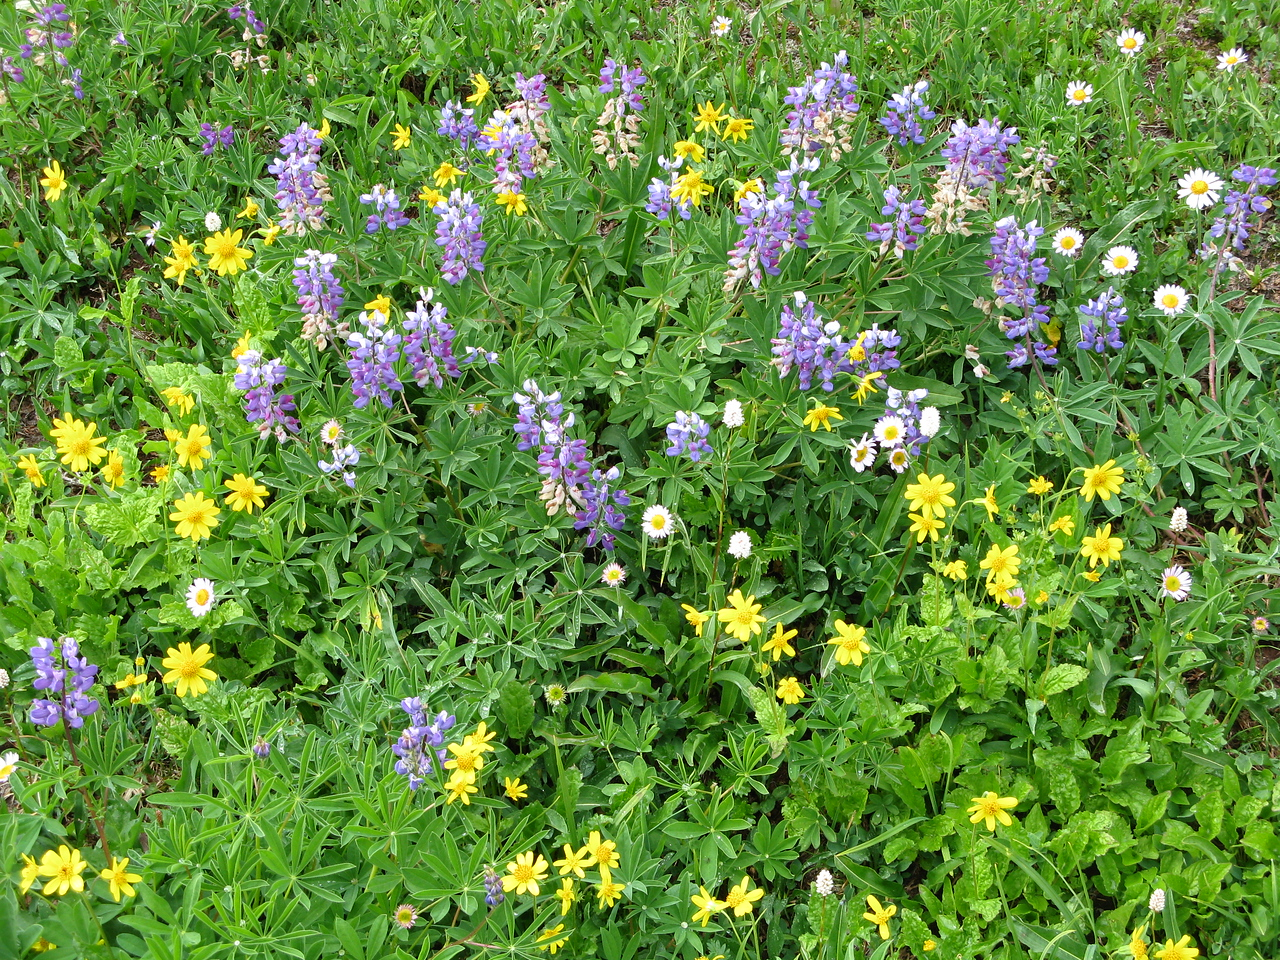 Wildflowers in the meadow.  A beautiful natural bouquet.